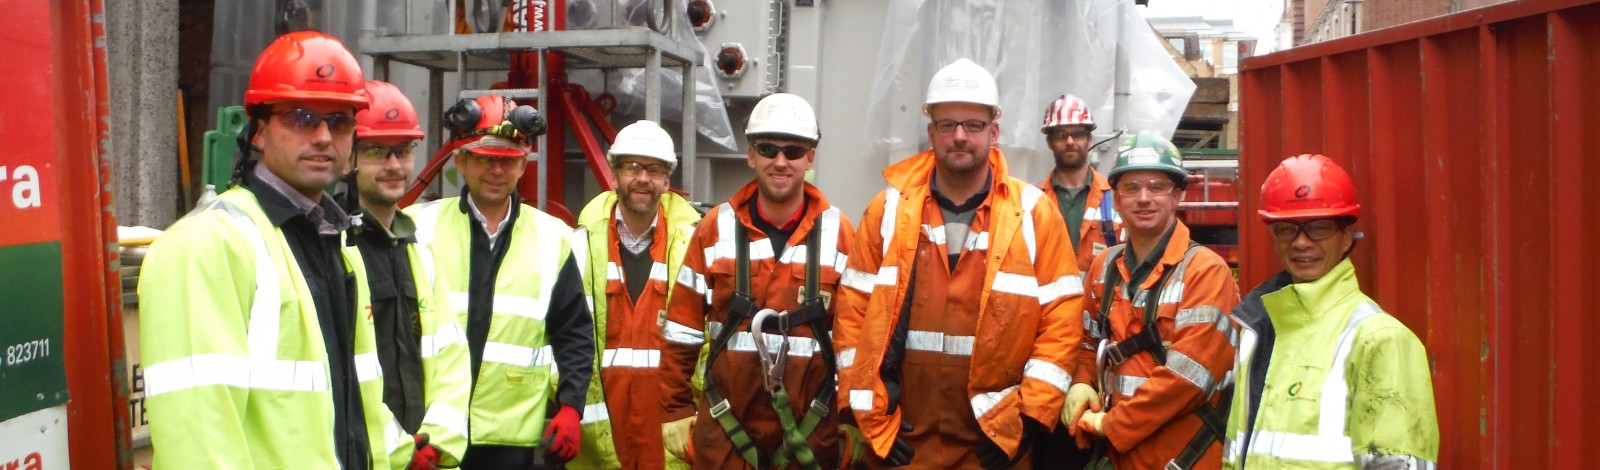 Clancy Docwra secures a place in UK Power Networks Alliance - Clancy Docwra Group